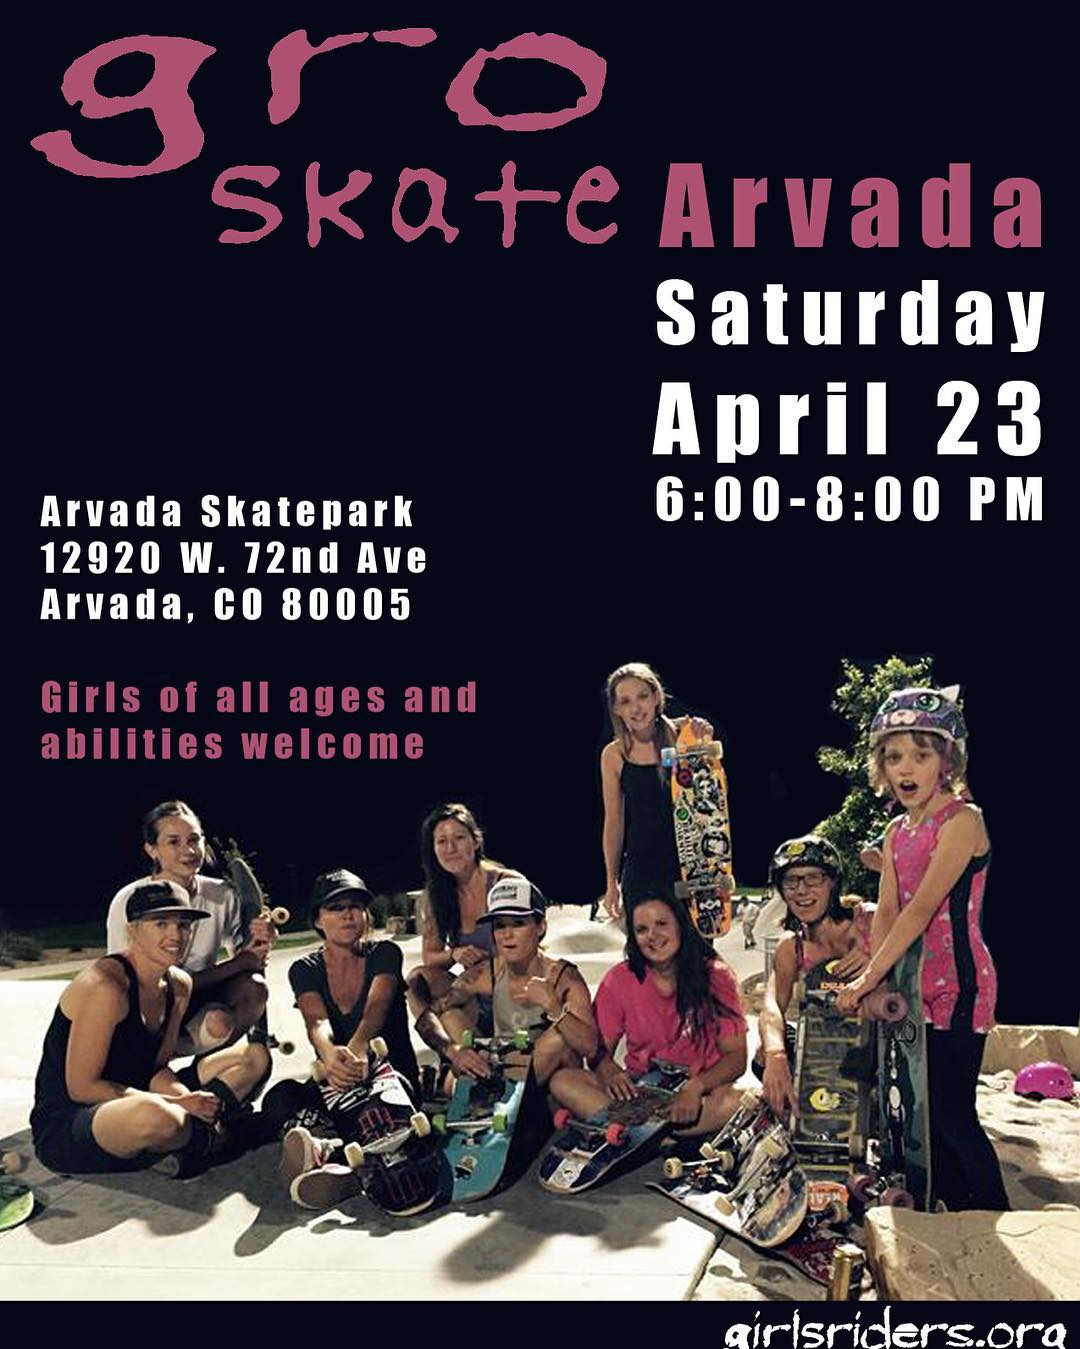 Don't forget to come shred with theses amazing ladies at Arvada Skatepark